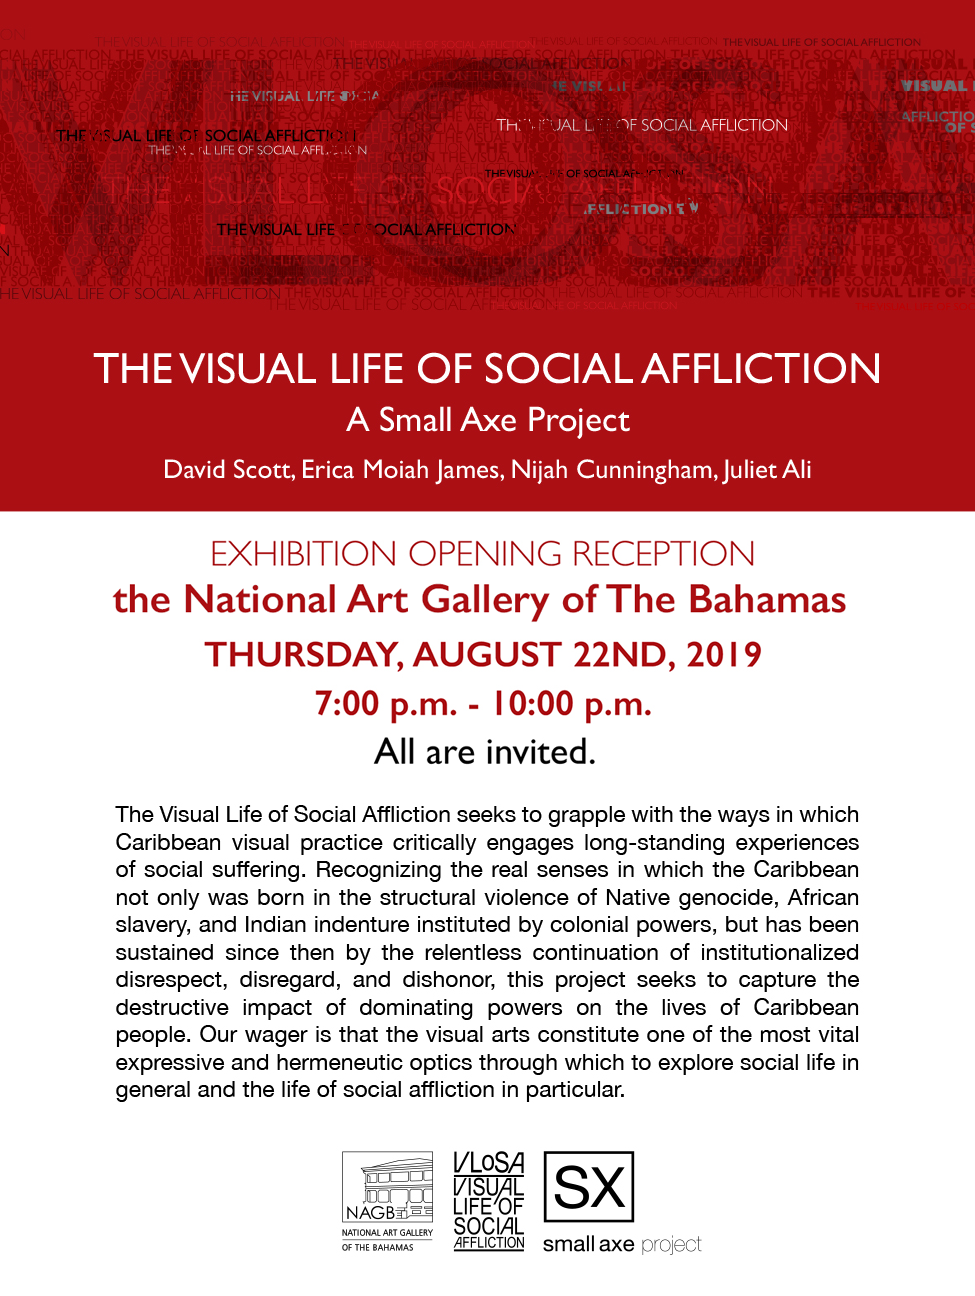 The Visual Life of Social Affliction Exhibition Opening Reception